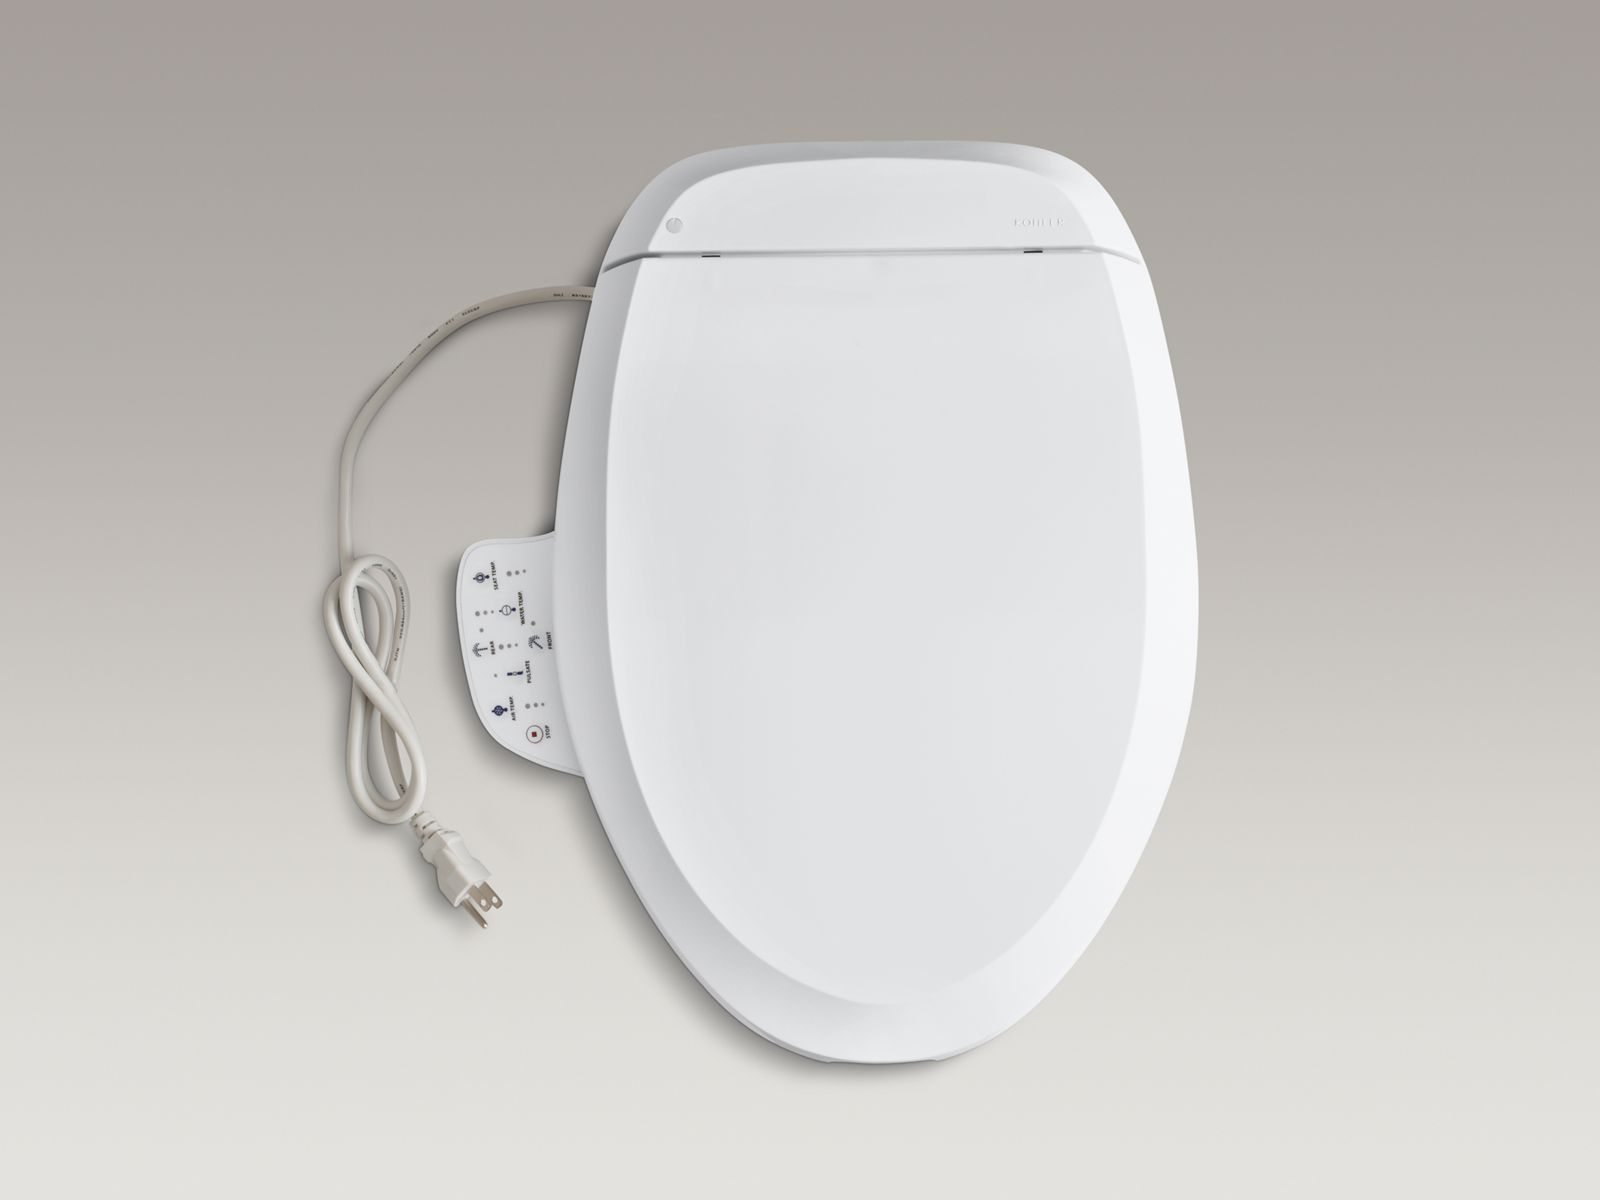 C3®-125 elongated closed-front toilet seat with bidet functionality and side controls - includes tank heater